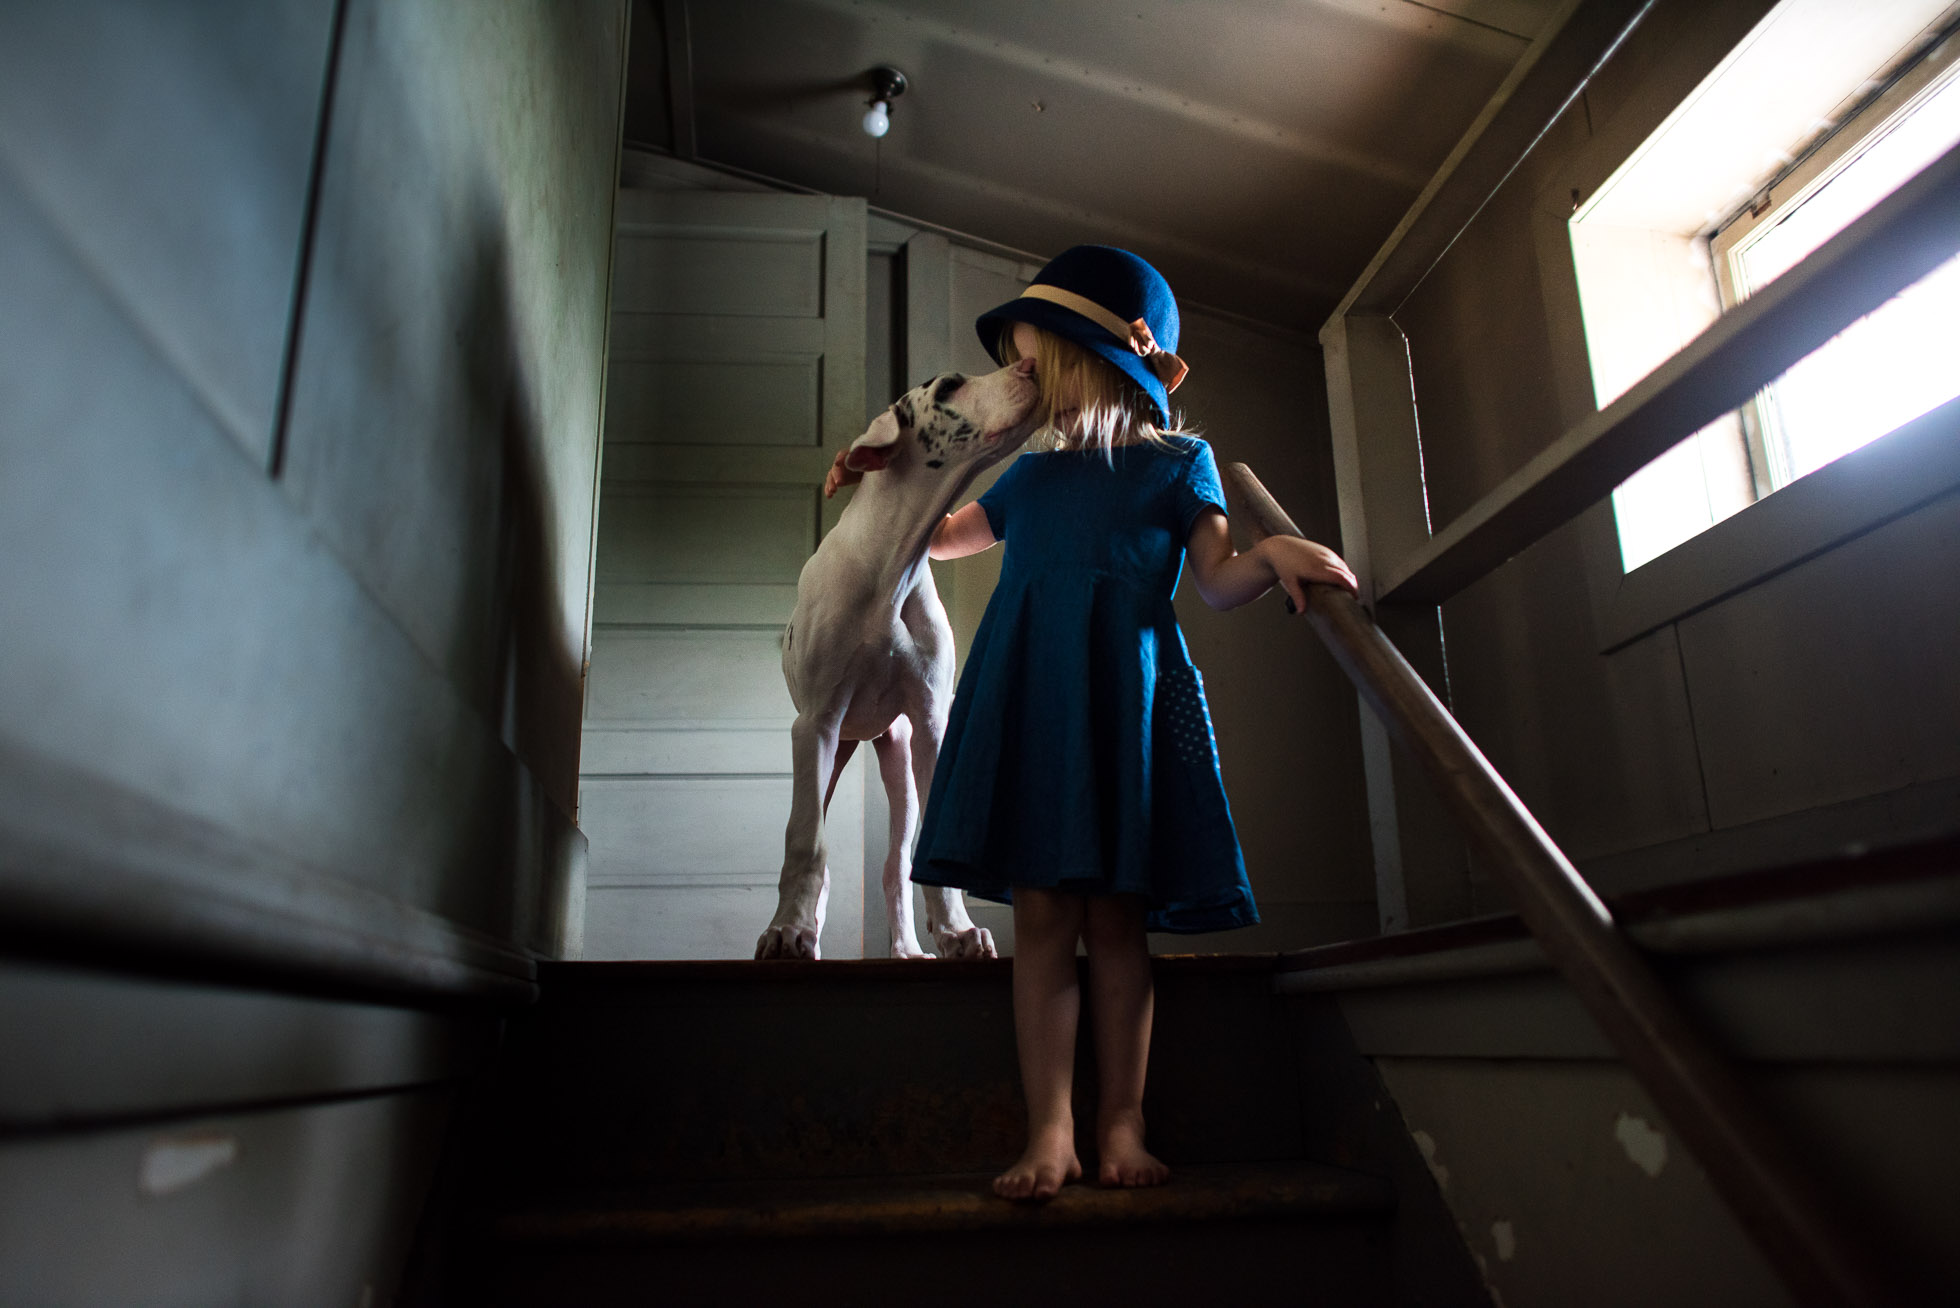 little-girl-with-old-fashioned-hat-standing-in-window-light-of-spooky-attic-with-harlequin-great-dane-puppy-by-sarah-wilkerson-1022